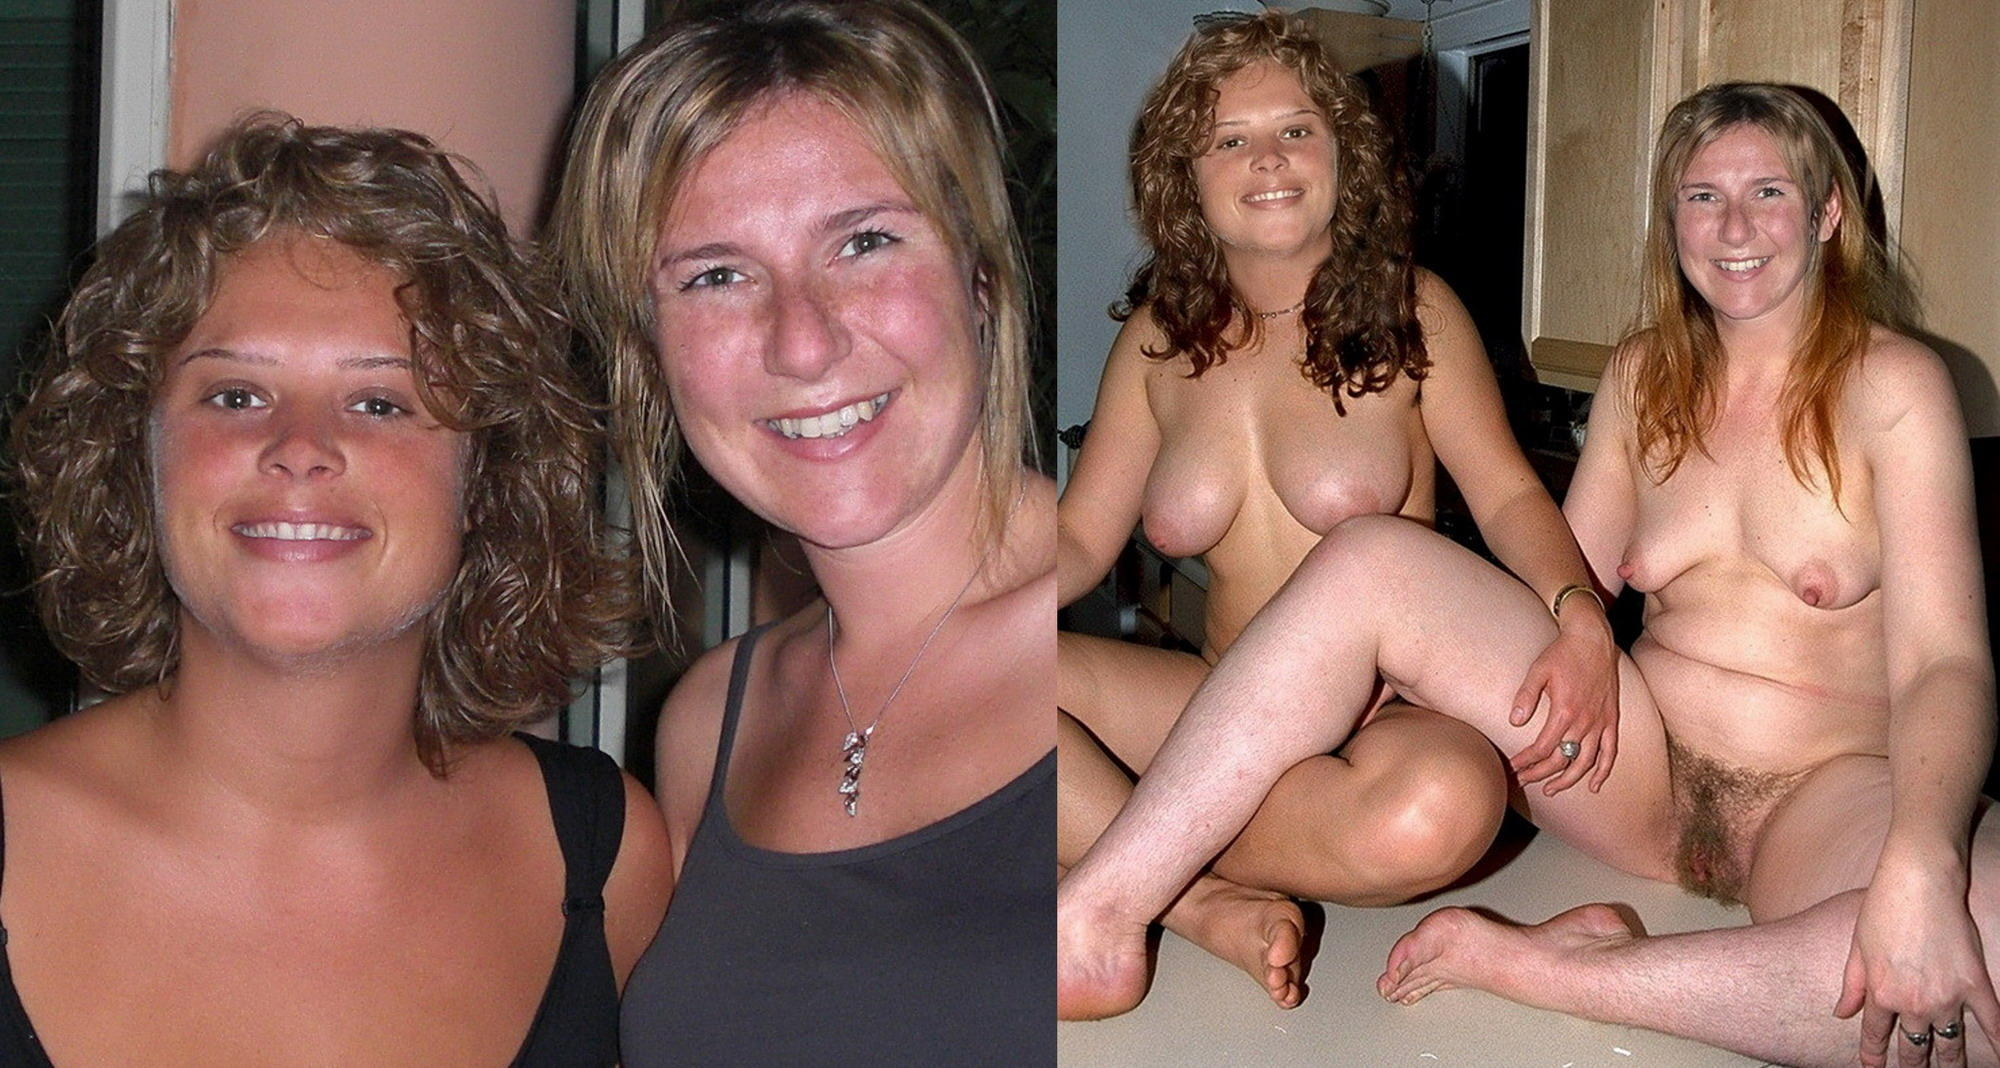 flat-chested-mothers-and-daughter-pic-sex